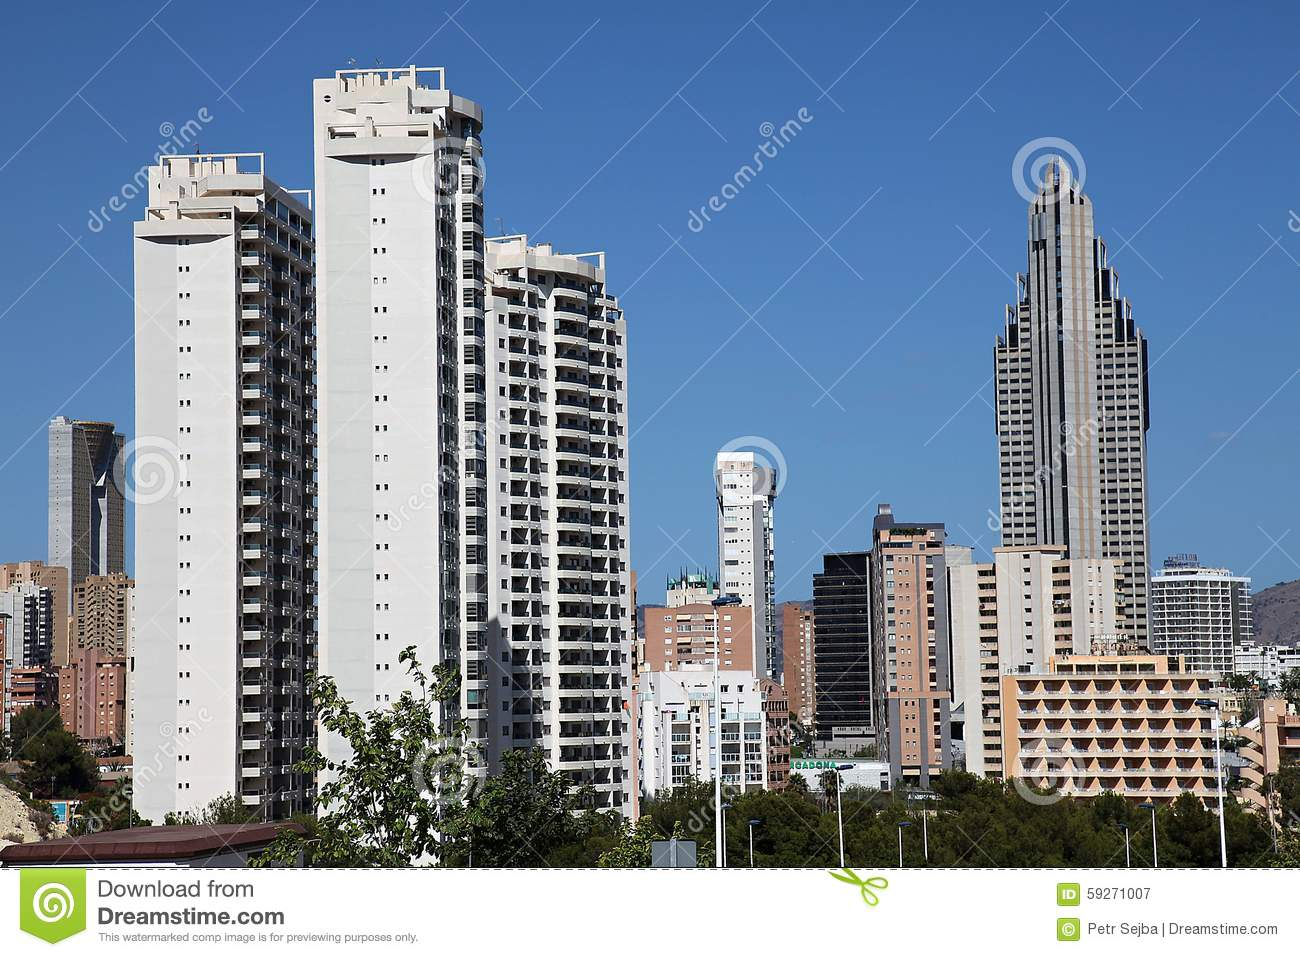 Download Benidorm skyscrapers stock image. Image of high, architecture - 59271007